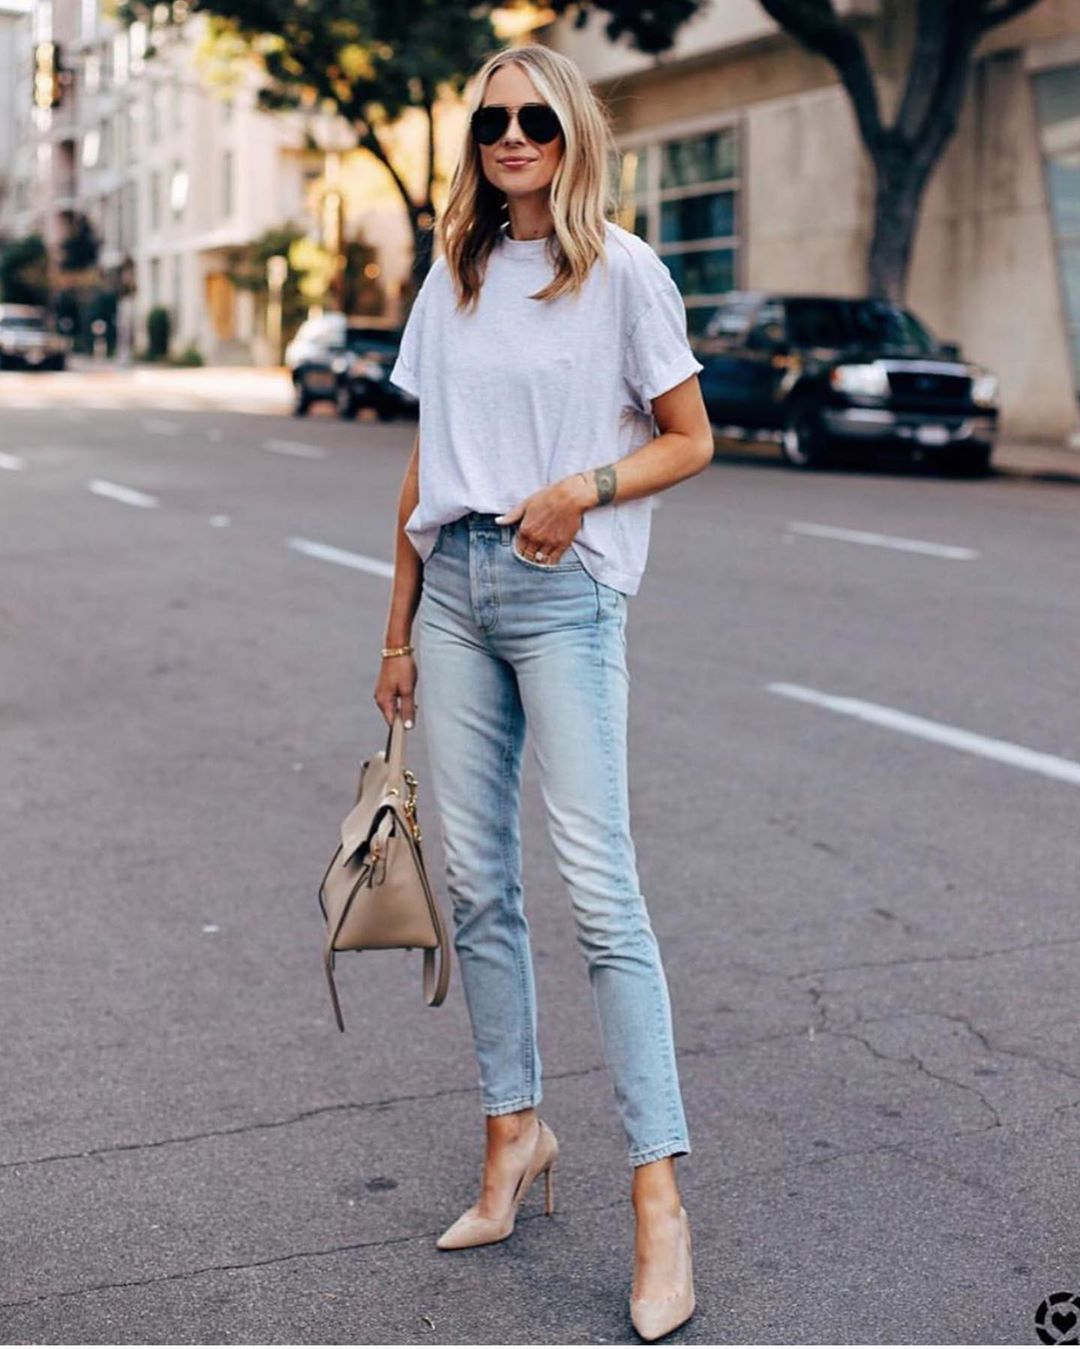 How To Wear Basic Top And Jeans This Summer 2019